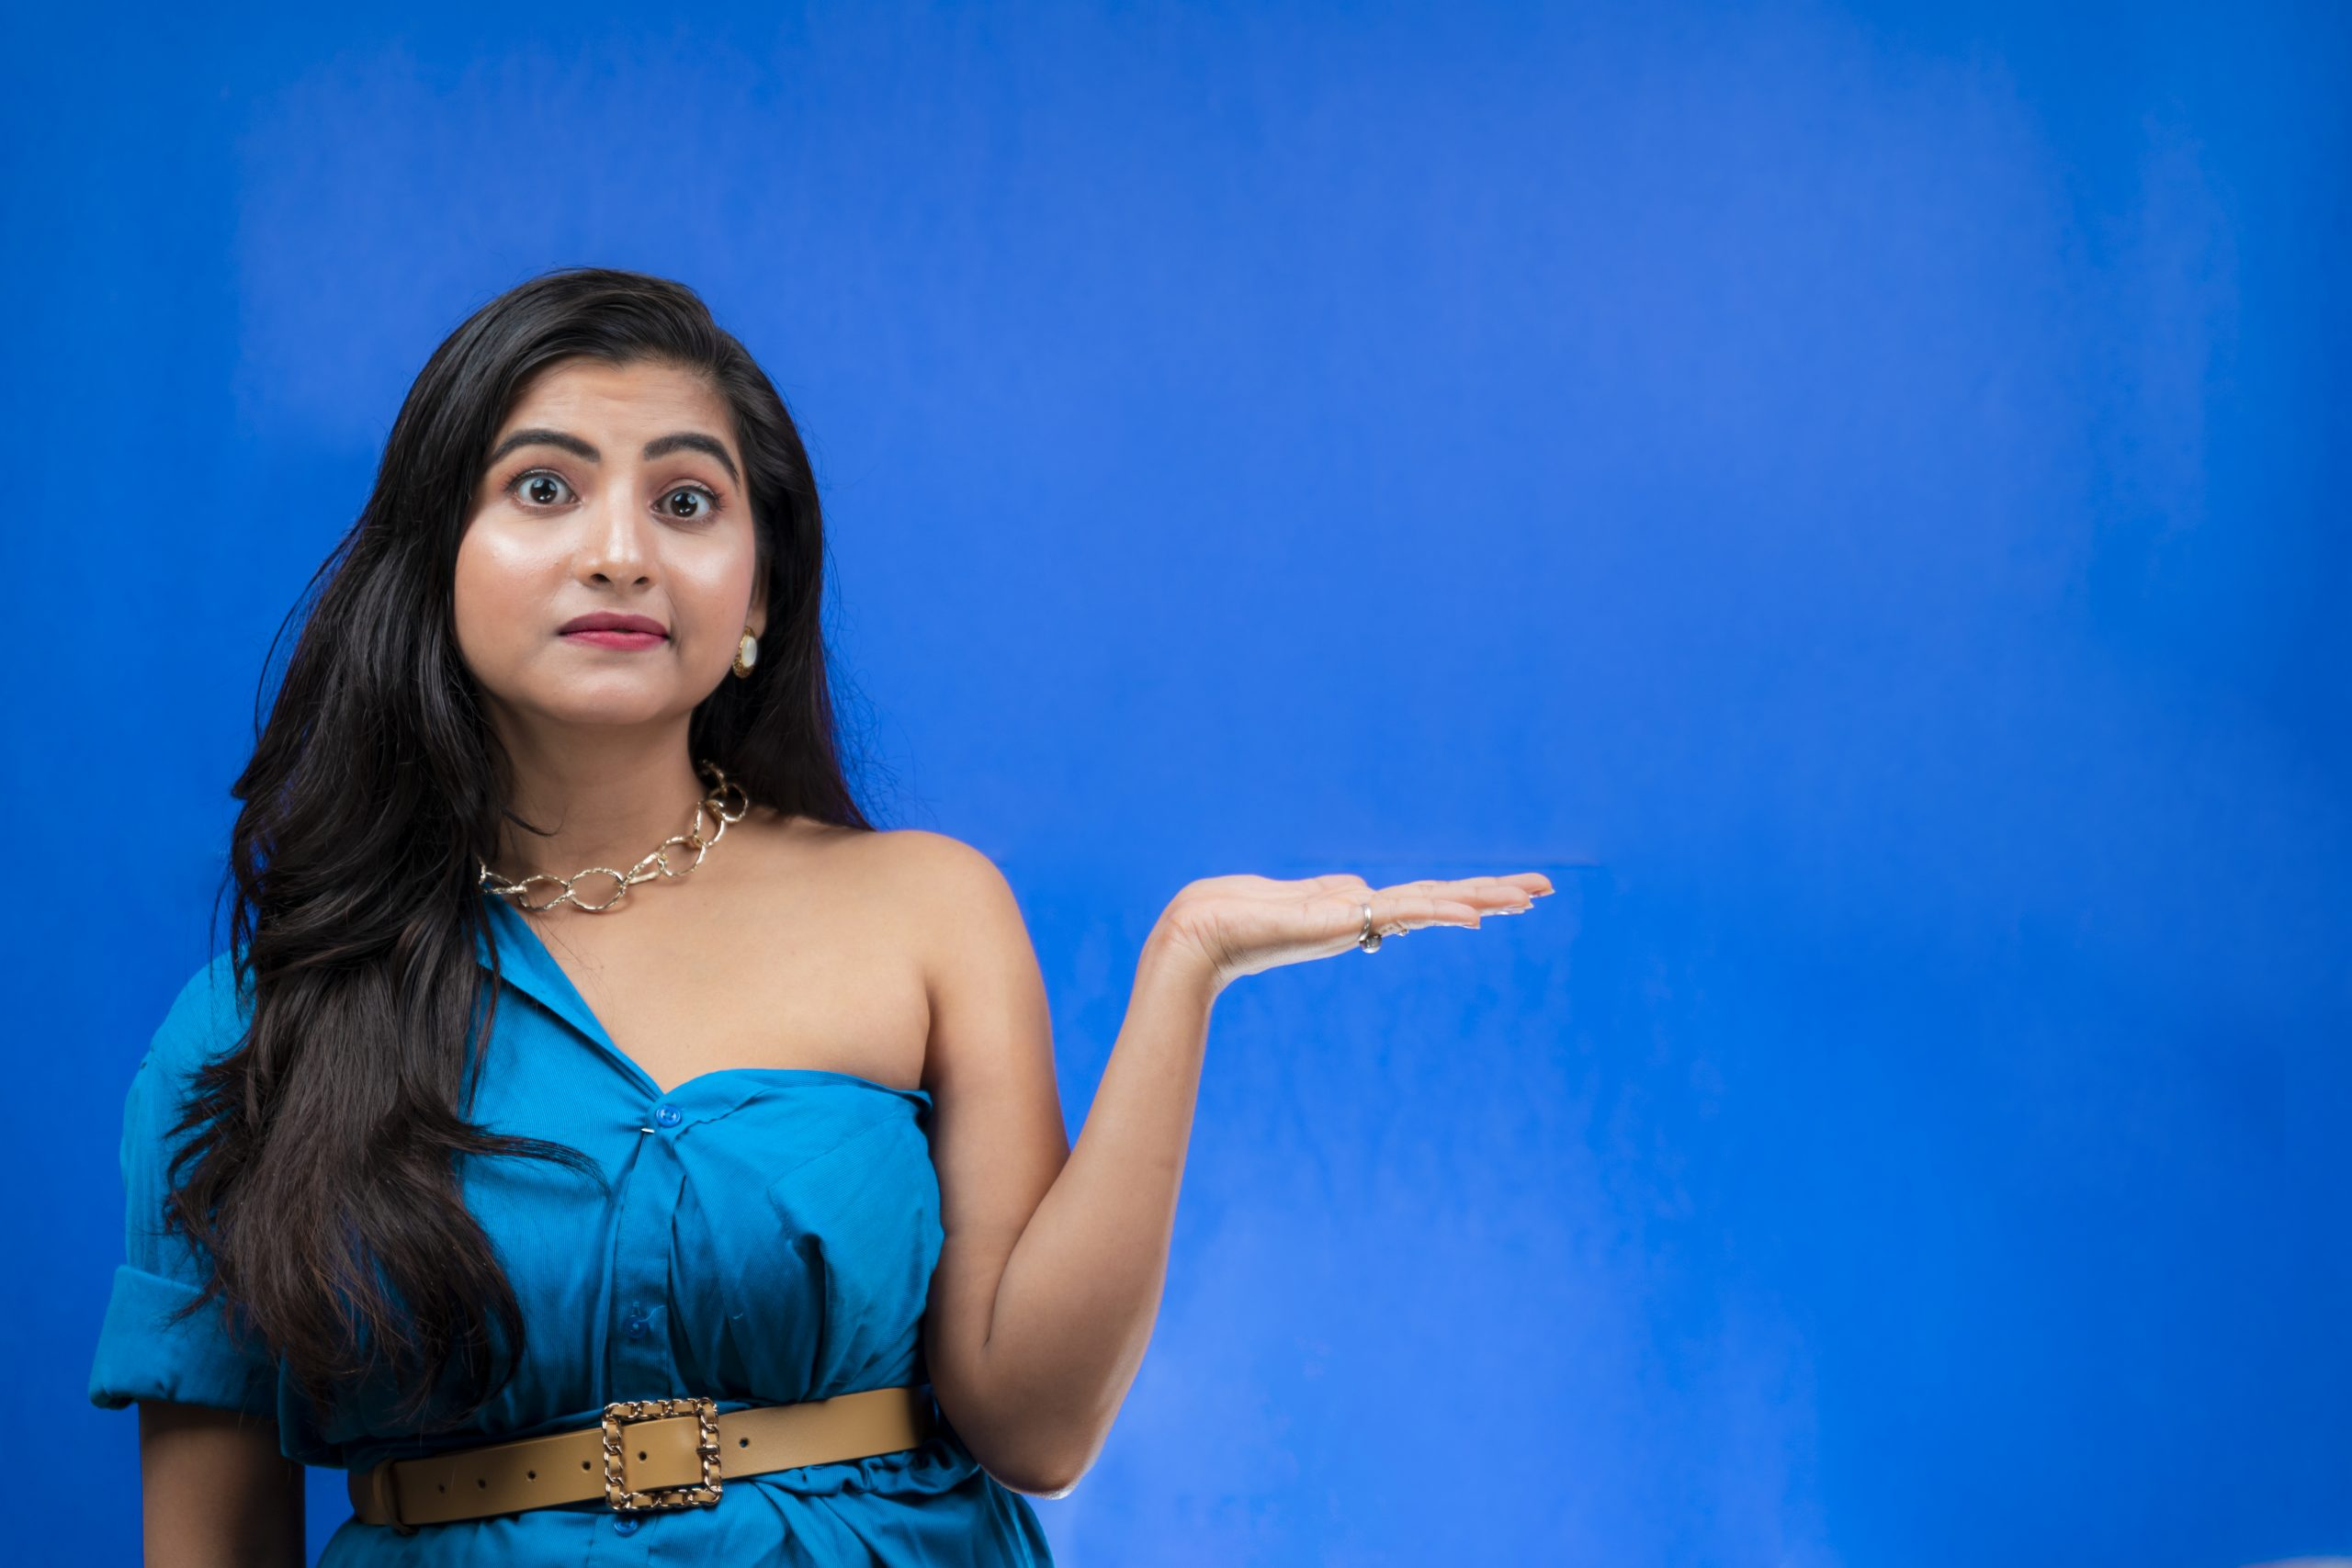 Young girl pointing hand sideways